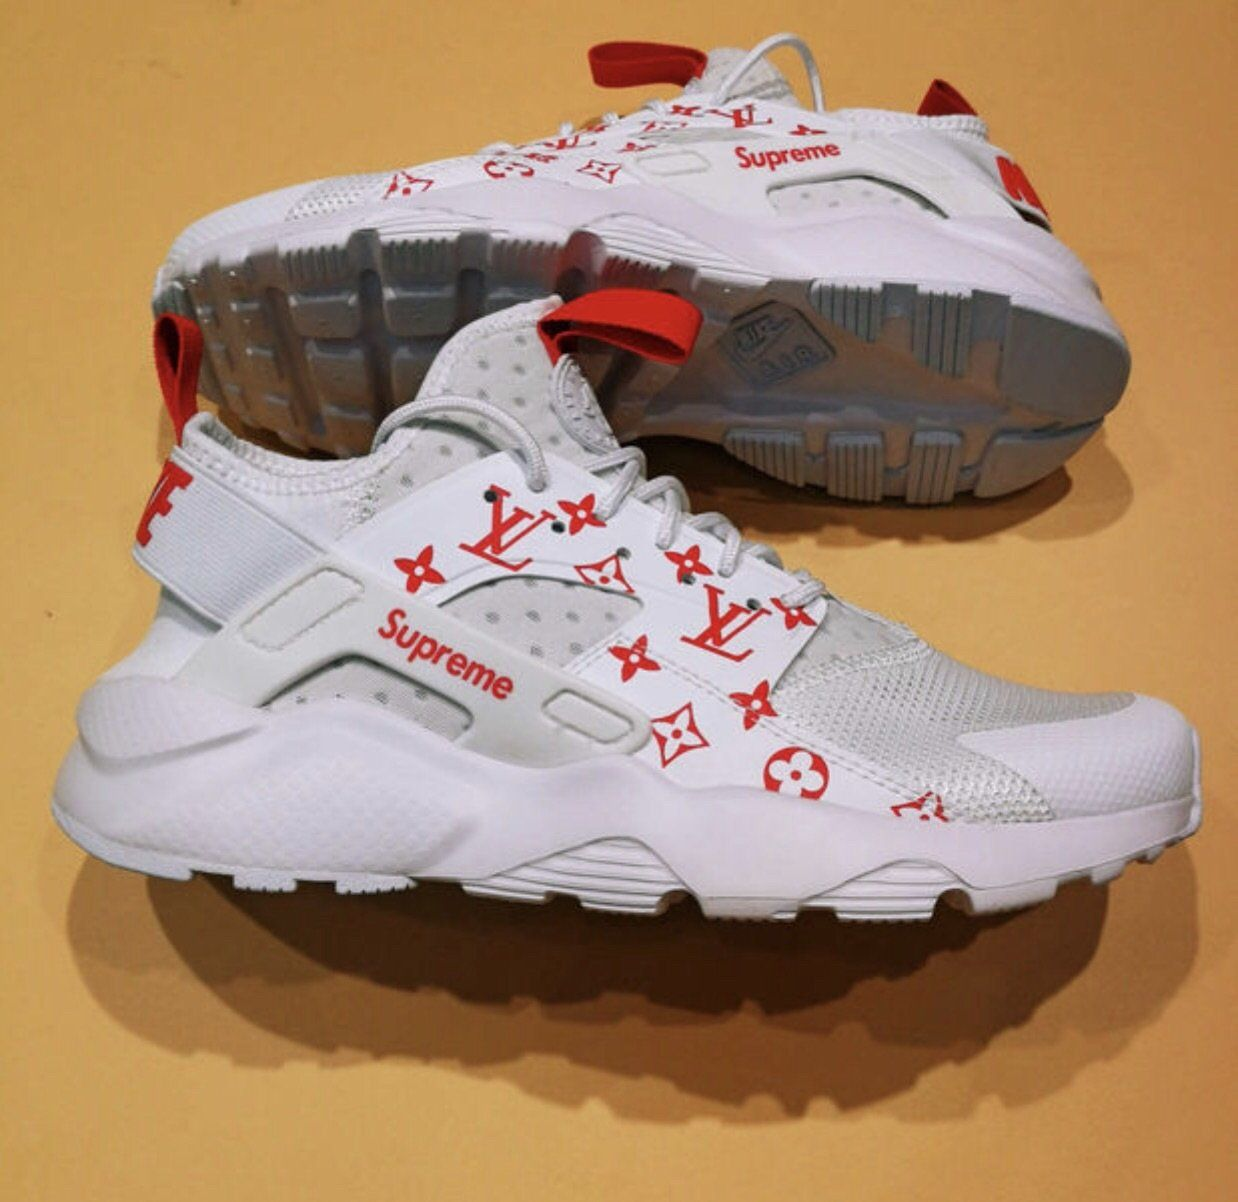 8304ac09ad32 Louis Vuitton x Supreme Huaraches Women s Huarache Shoes